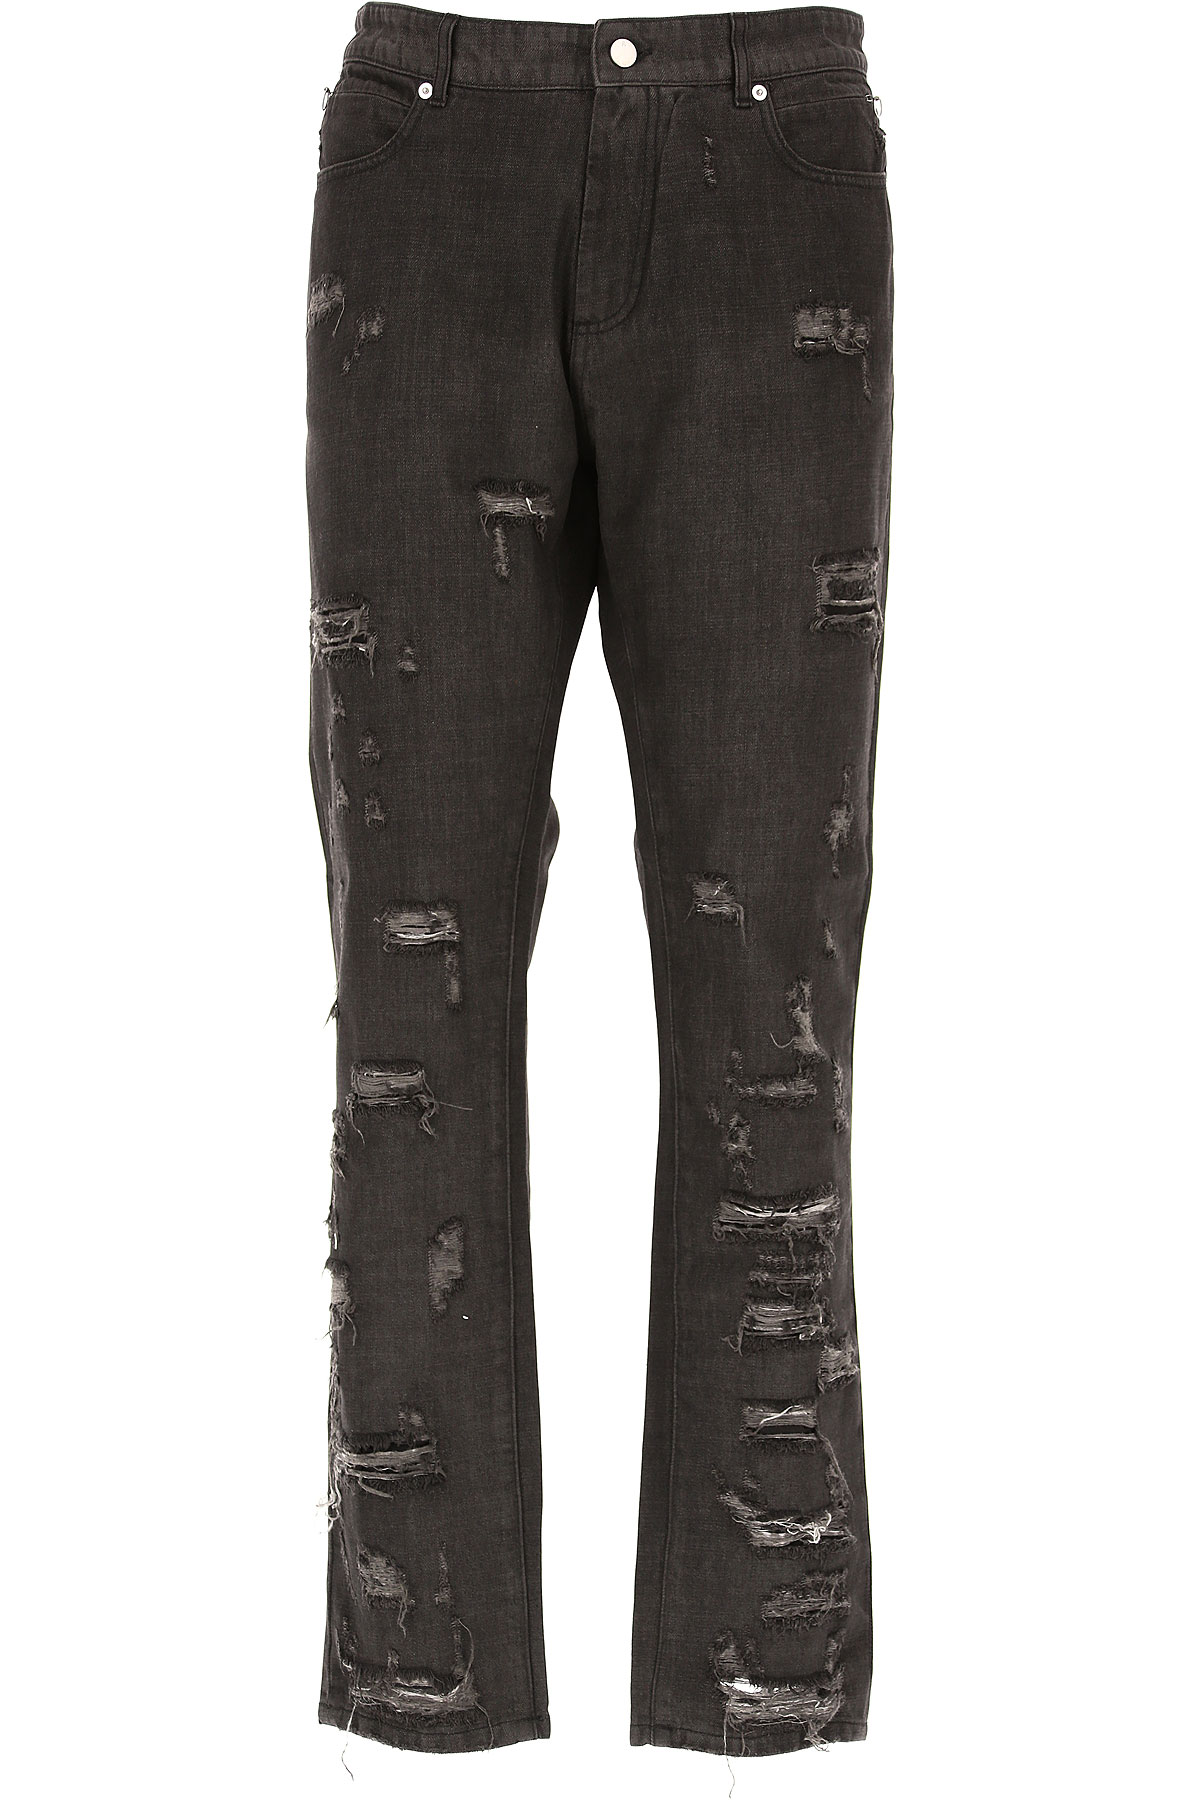 ALYX Jeans On Sale in Outlet, Black, Cotton, 2017, 32 34